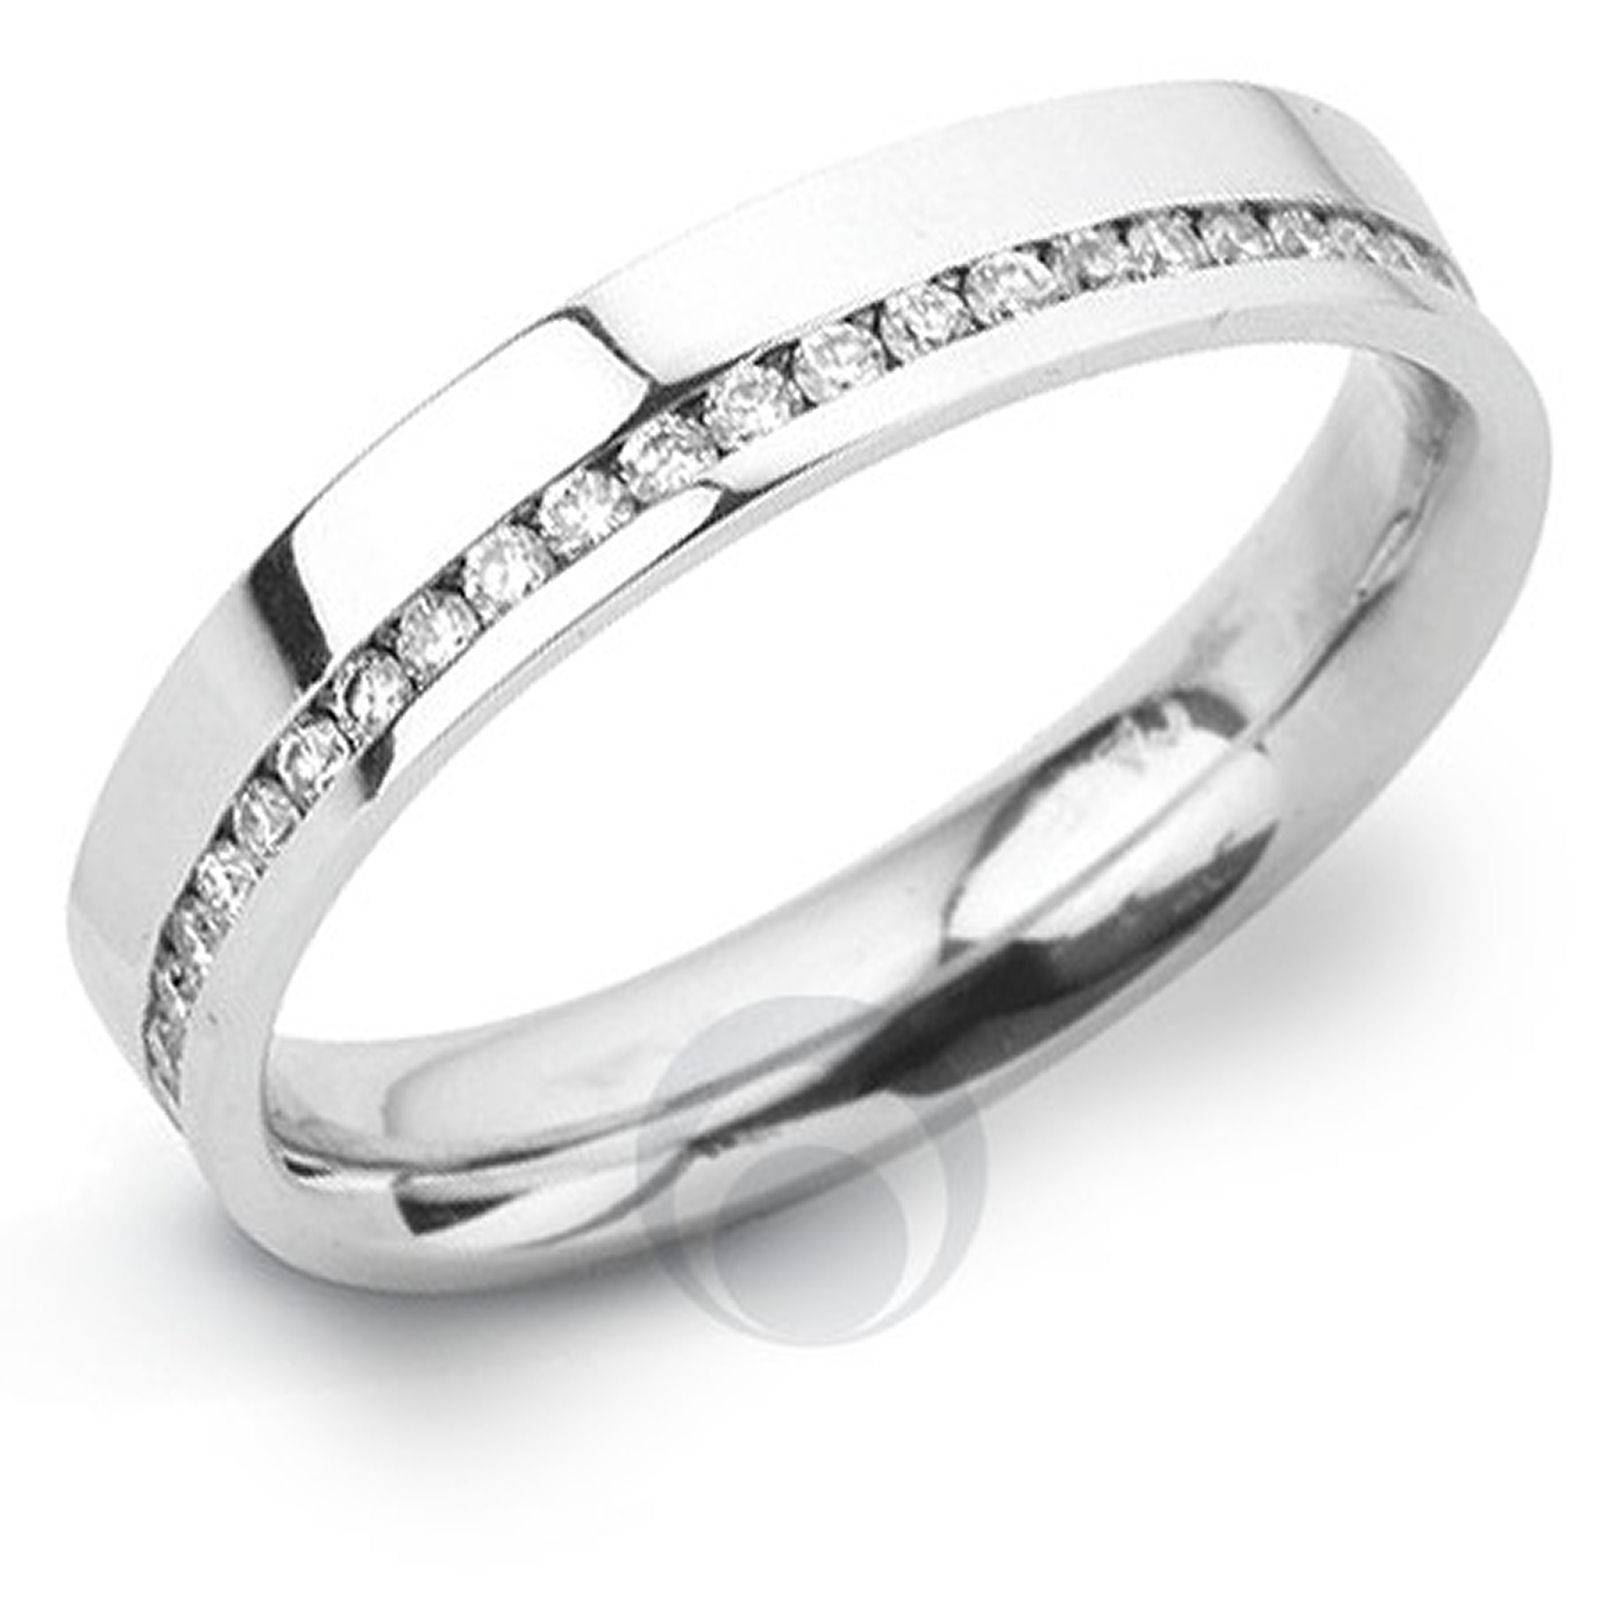 Channel Diamond Platinum Wedding Ring Wedding Dress From The Pertaining To Platinum Wedding Rings With Diamonds (View 5 of 15)